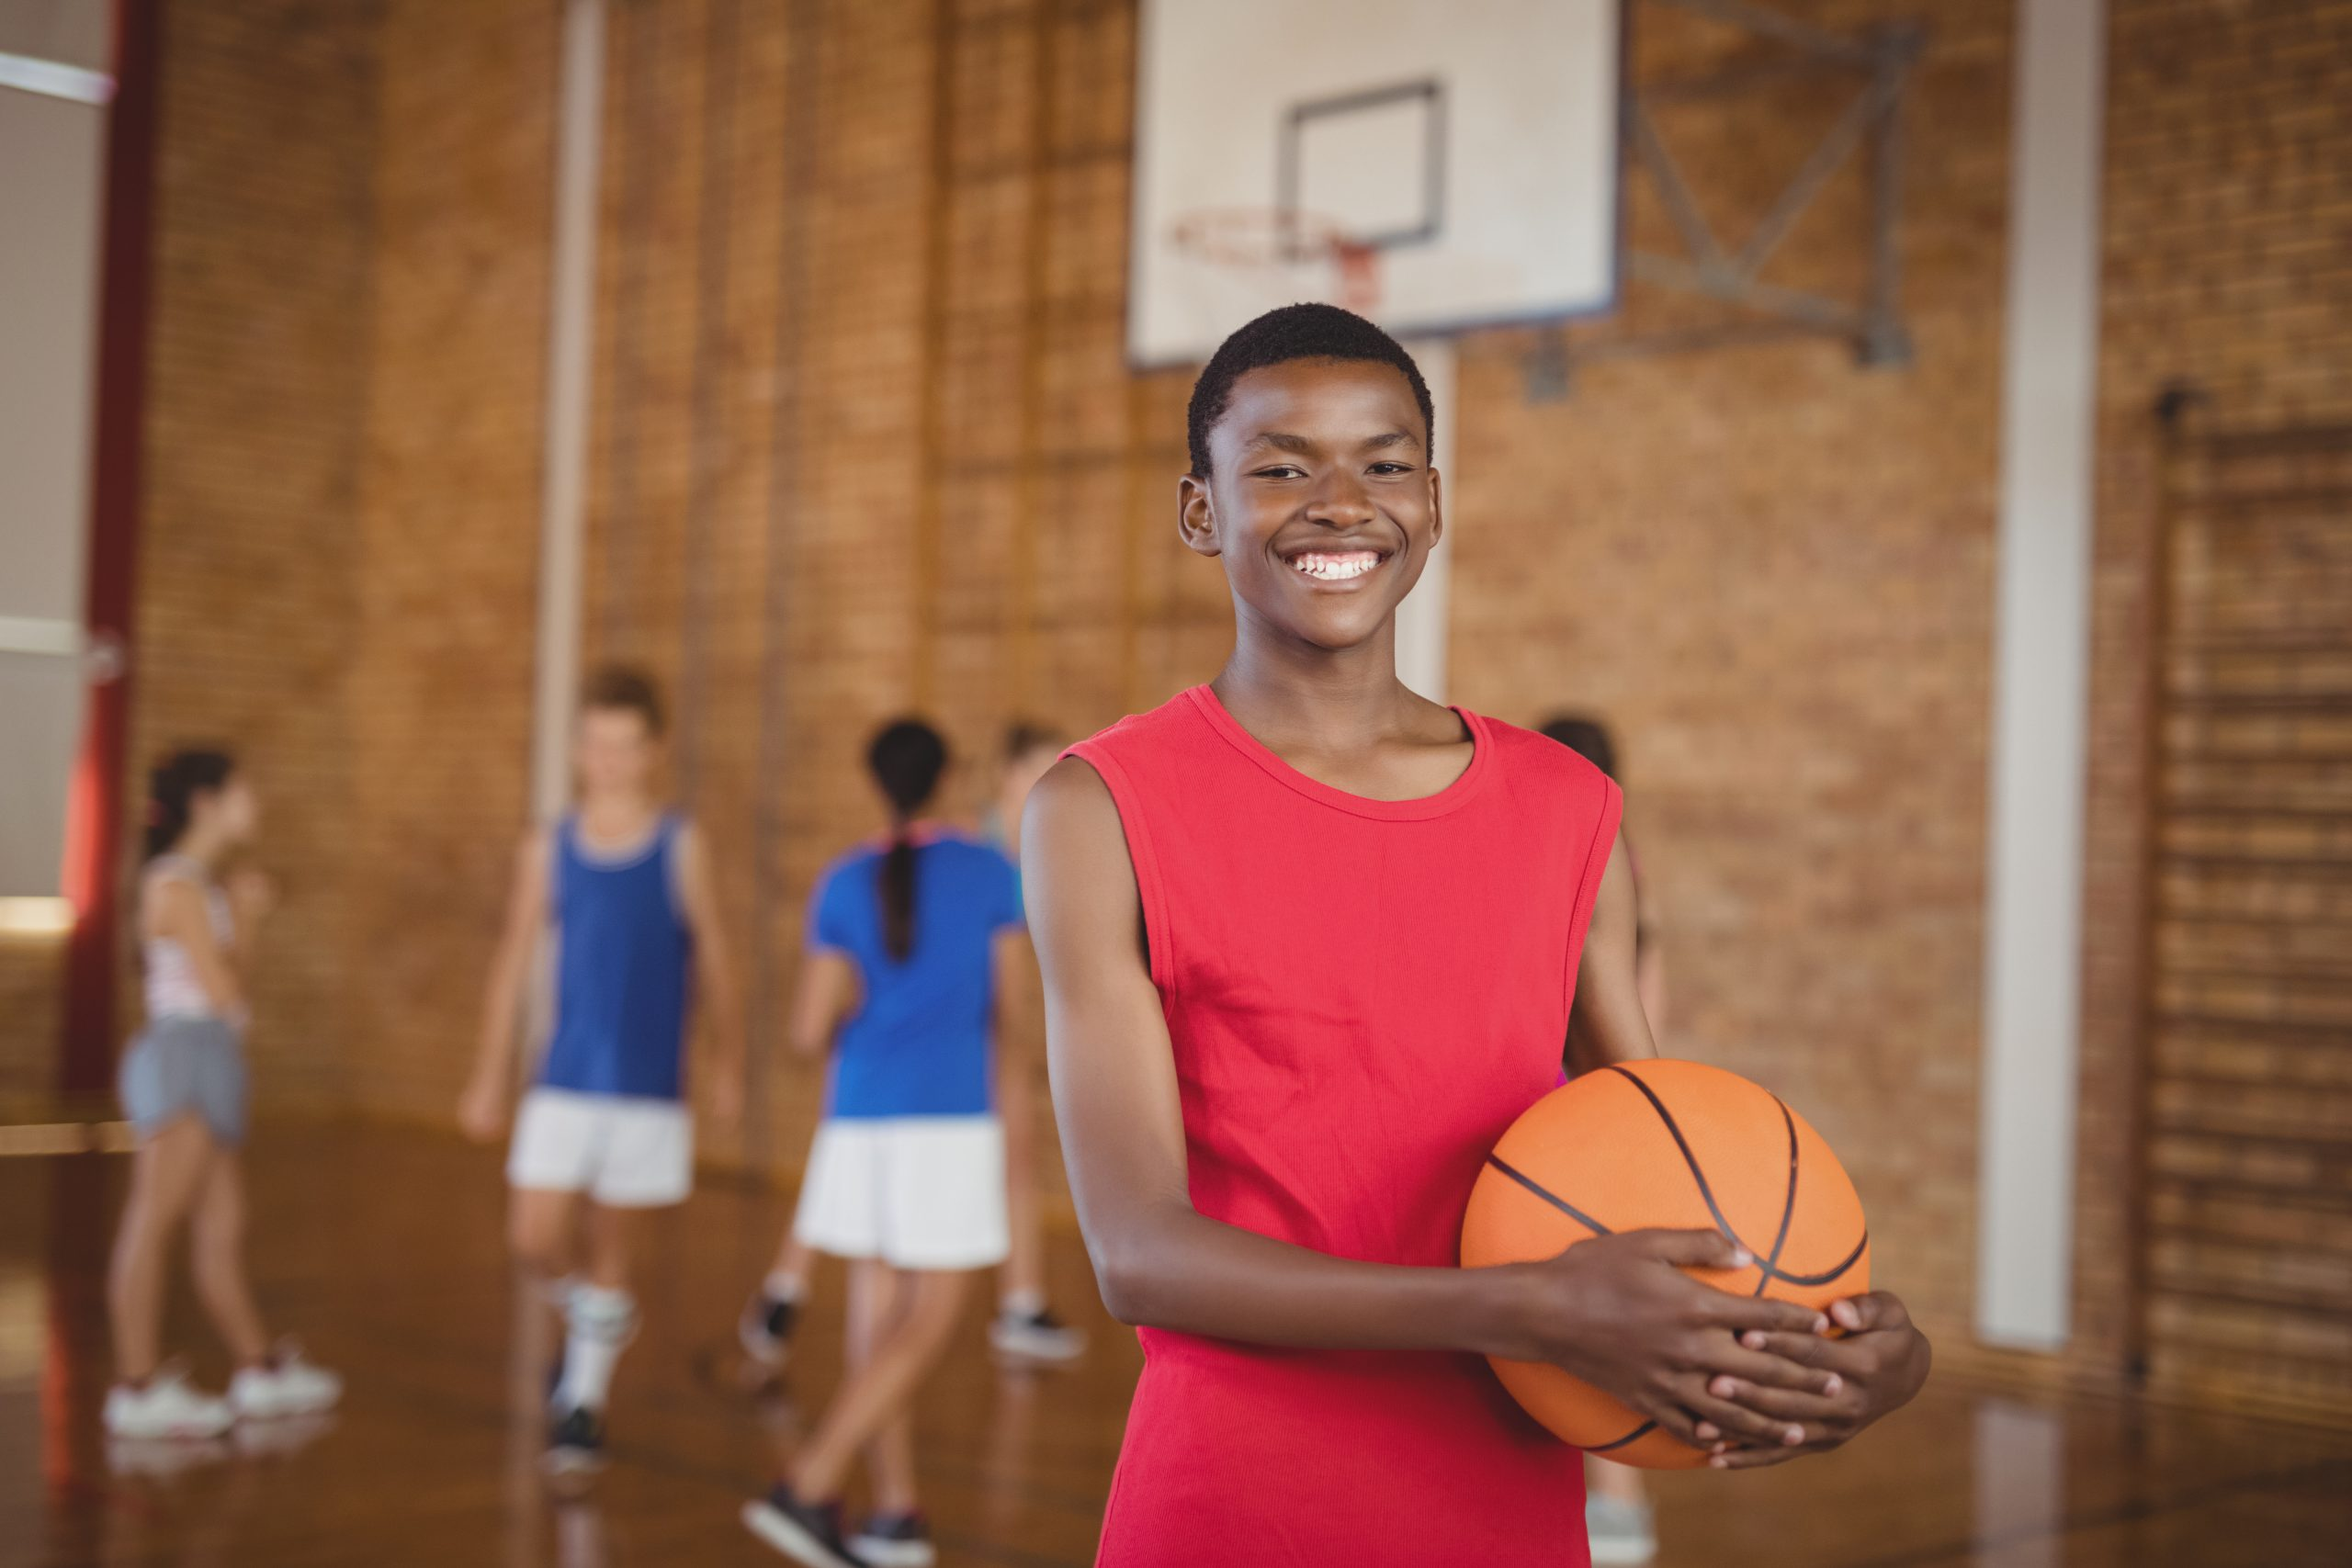 Portrait of smiling school boy holding a basketball while team playing in background